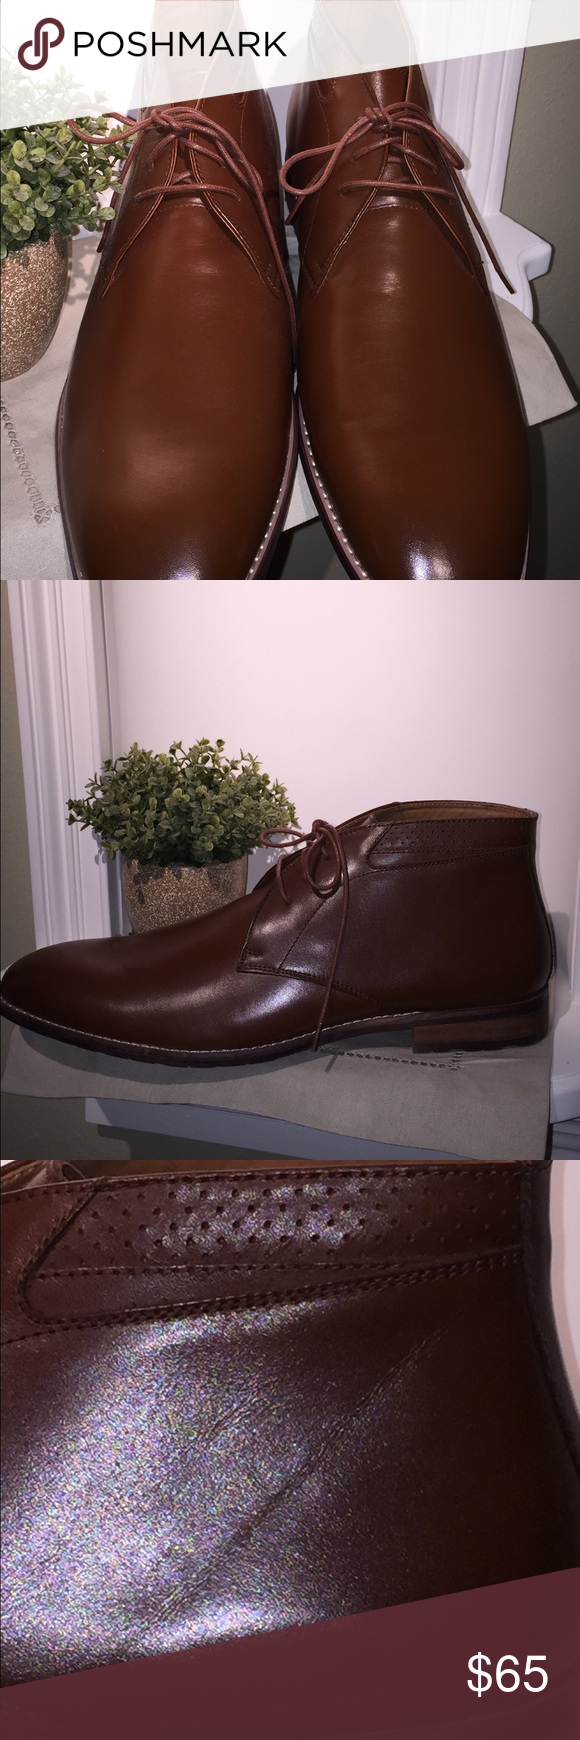 STEVE MADDEN men's leather chukka dress shoes Beautiful pair of men's leather STEVE MADDEN shoes.  Shoes are in MINT condition.  These come from a smoke free / pet free home Steve Madden Shoes Ankle Boots & Booties